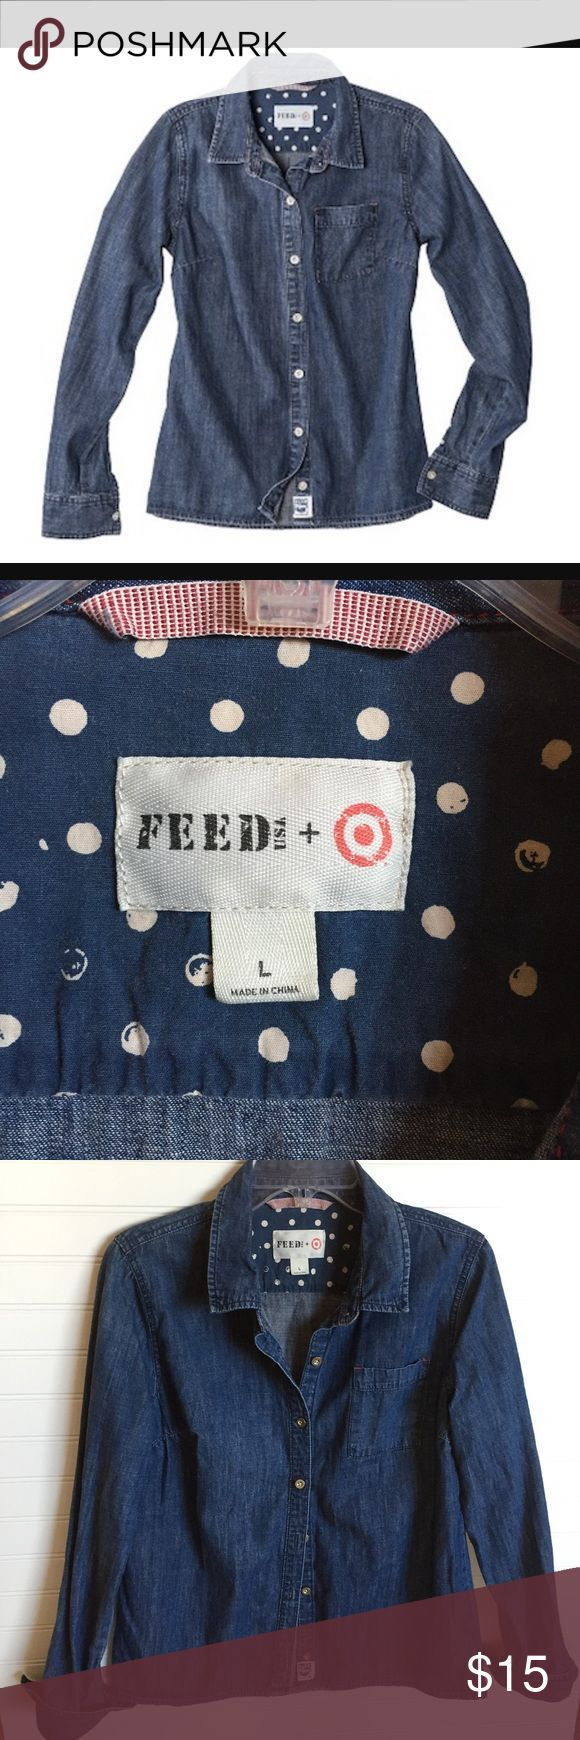 """FEED USA+Target Long-sleeve Chambray Shirt  A Feed USA+Target classic denim shirt with red stitching & cute polka dot accents. Dark wash look. Can be worn buttoned or an open/unbuttoned look with a cute tee or tank❤️Previously loved-good condition. Size L IMO shirt fits more like a med/or smaller end of large size; see measurements to determine if it will work for you. Super cute! If it doesn't sell I'm keeping it!  Measurements are approx. (flat): length 26"""", armpit to armpit 20"""".  Comes…"""